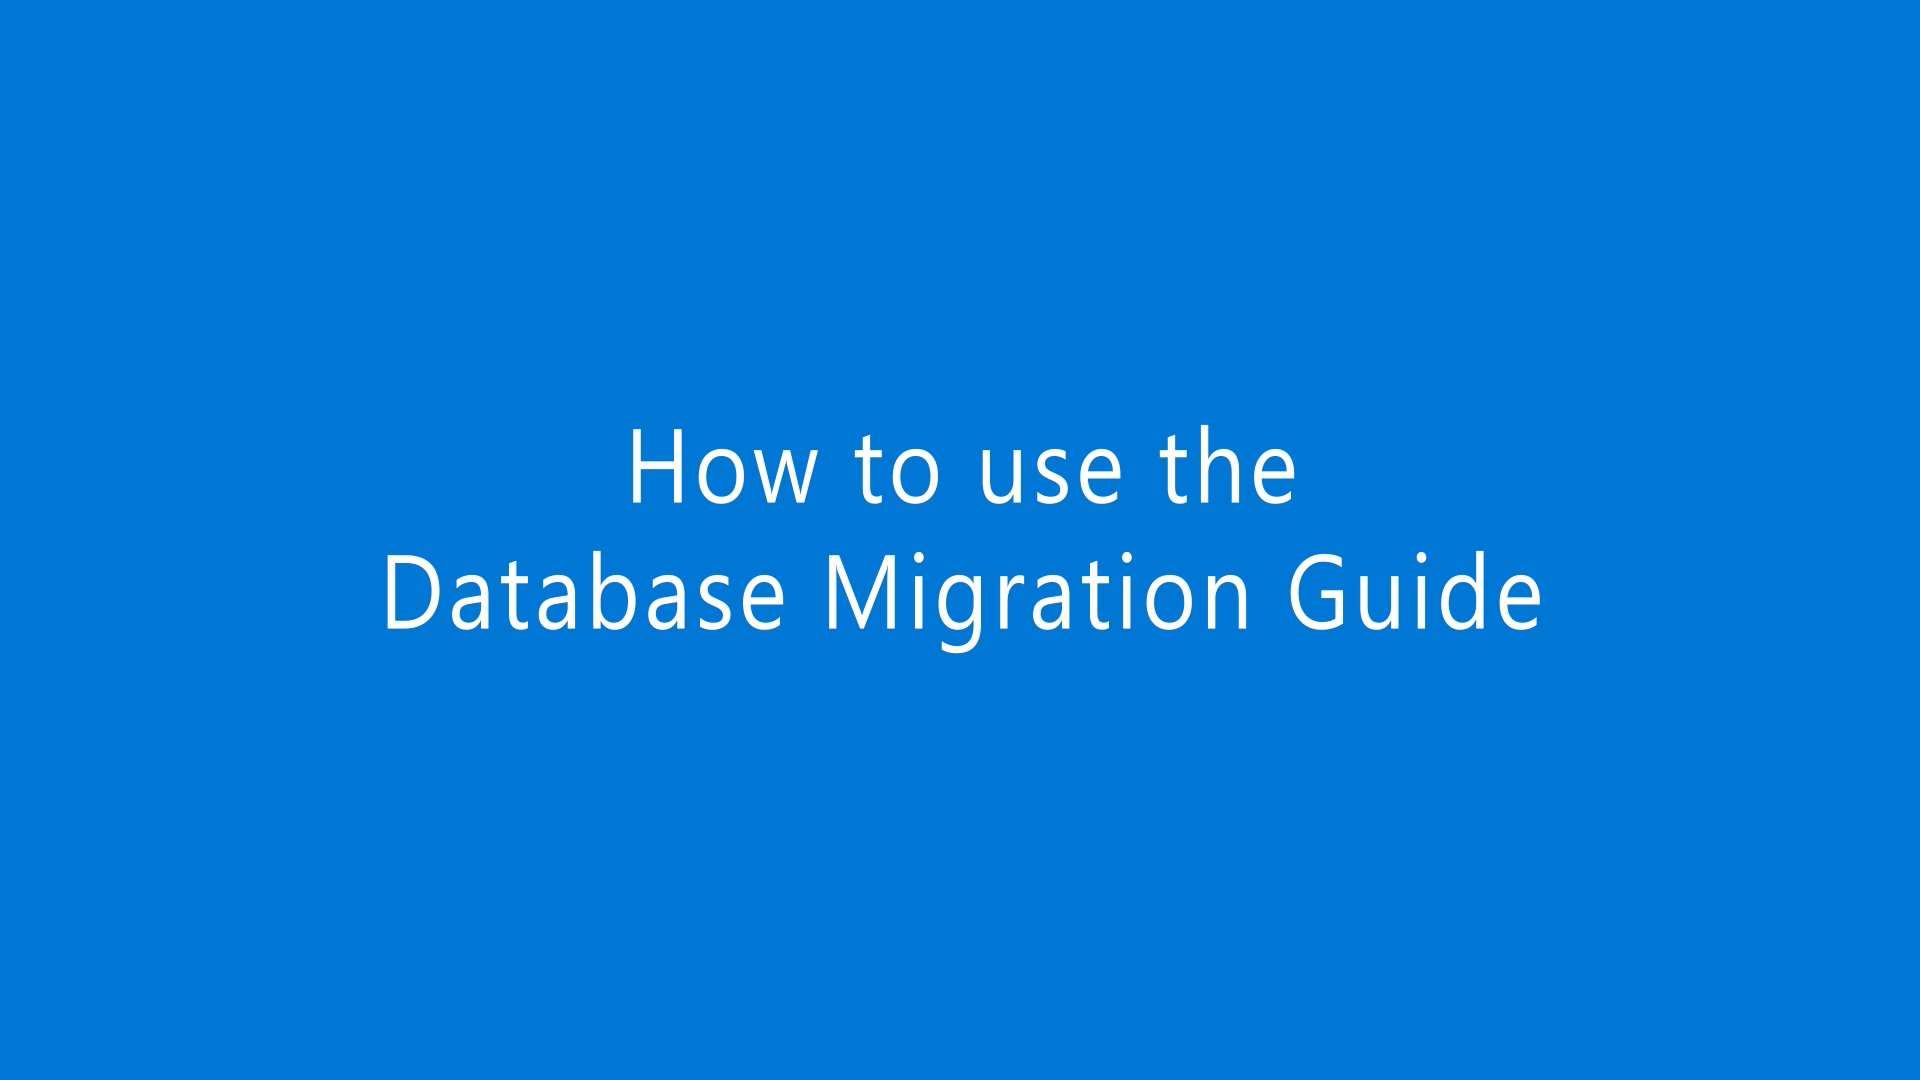 How to Use the Database Migration Guide